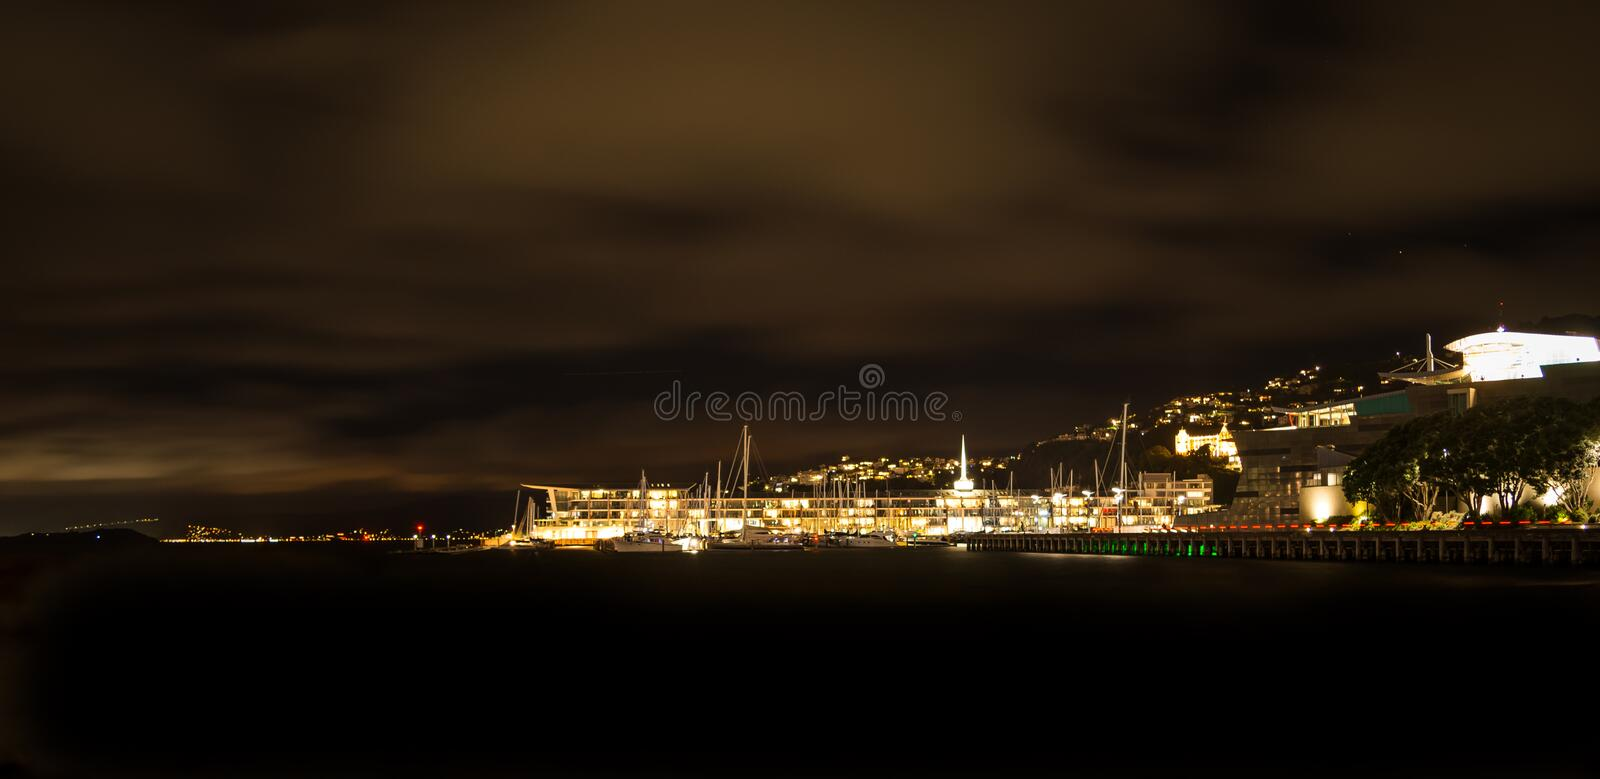 Wellington city waterfront at night: Lit-up houses on the slopes of Mt Victoria and street lights shining over calm royalty free stock image